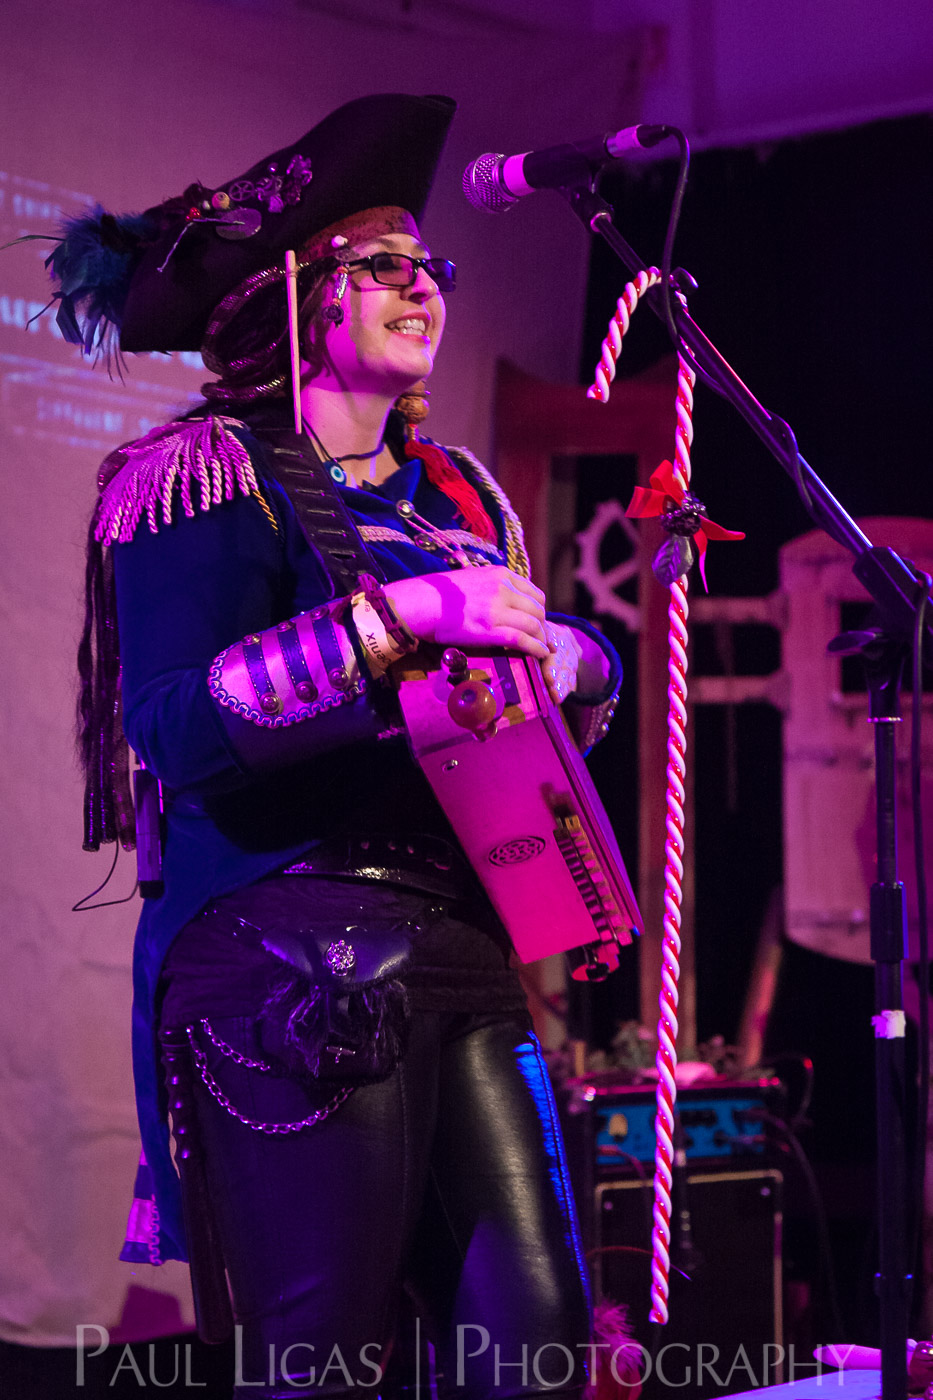 Steampunk Yule Ball 2014, event photographer photography Herefordshire music concert girdybird 6381